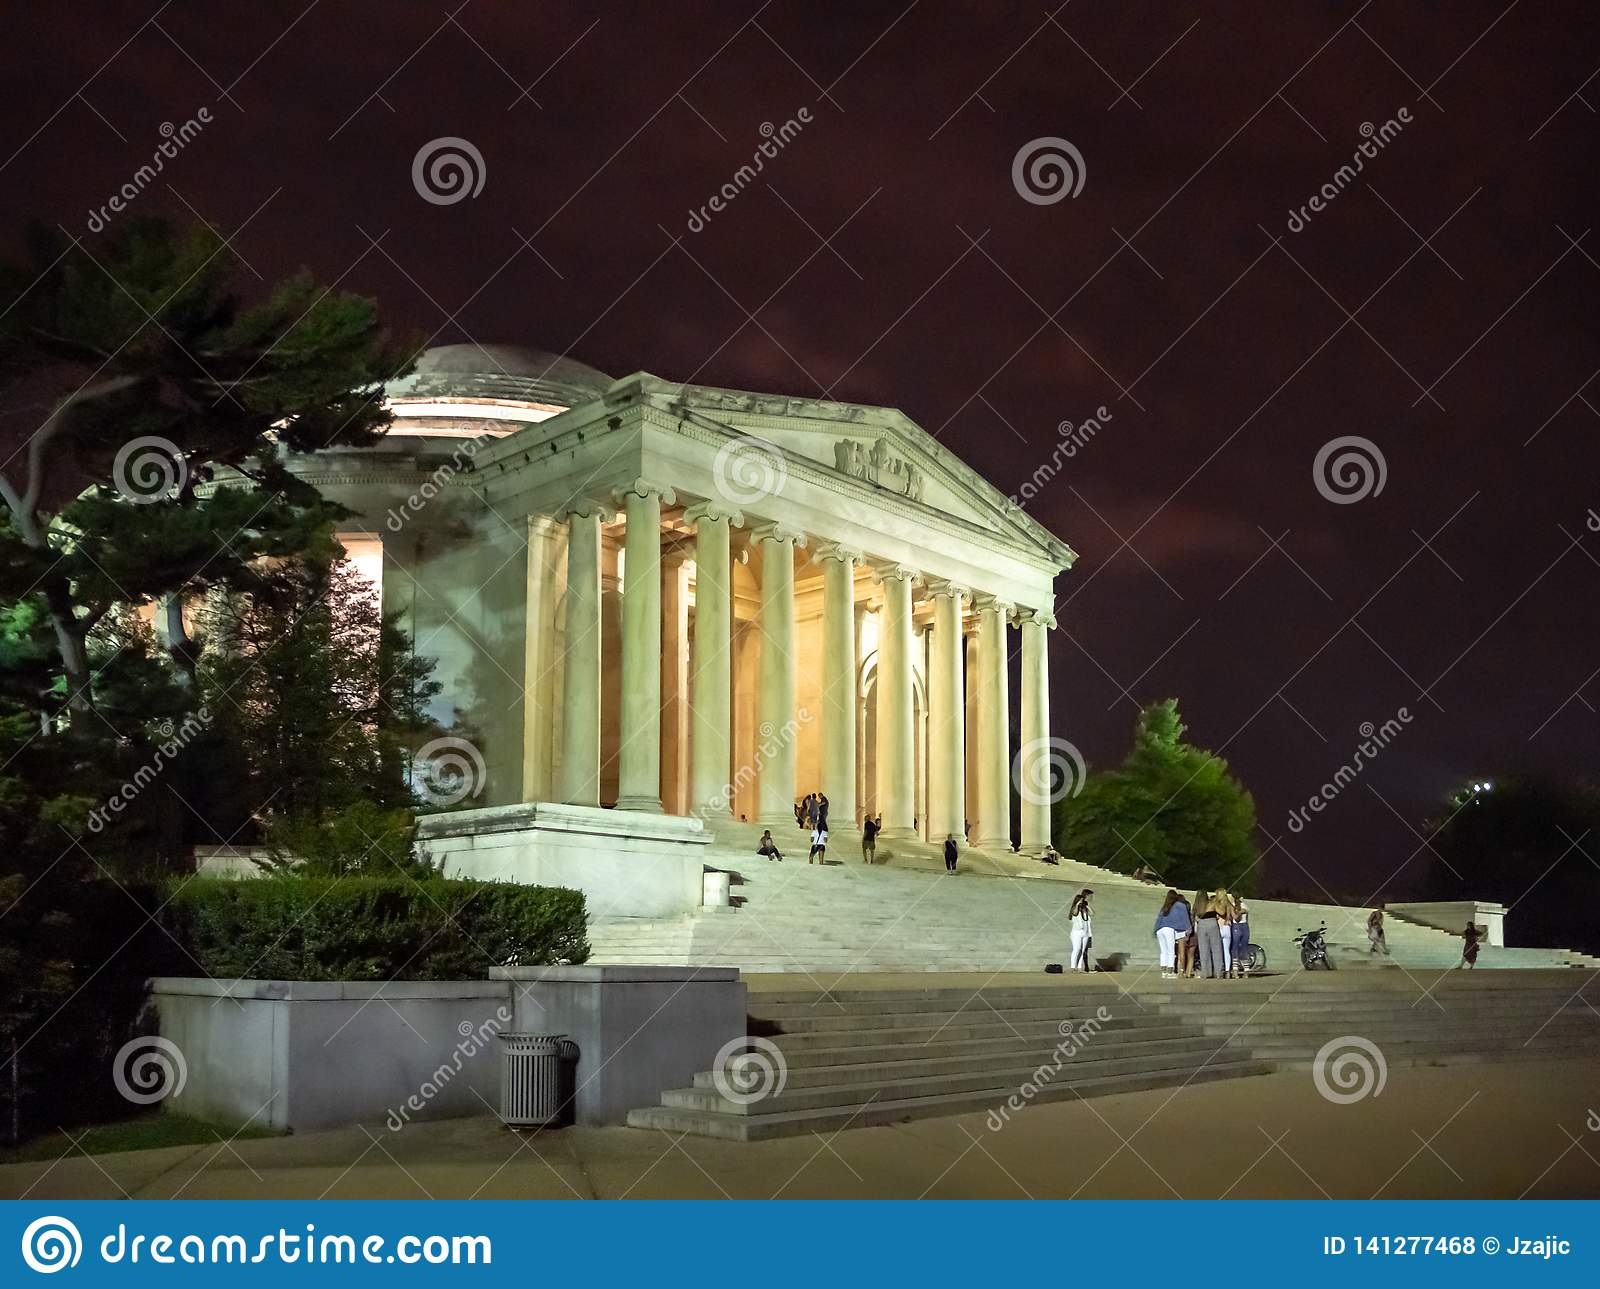 Washington DC, District of Columbia [United States US, Thomas Jefferson Memorial, American Founding Fathers,